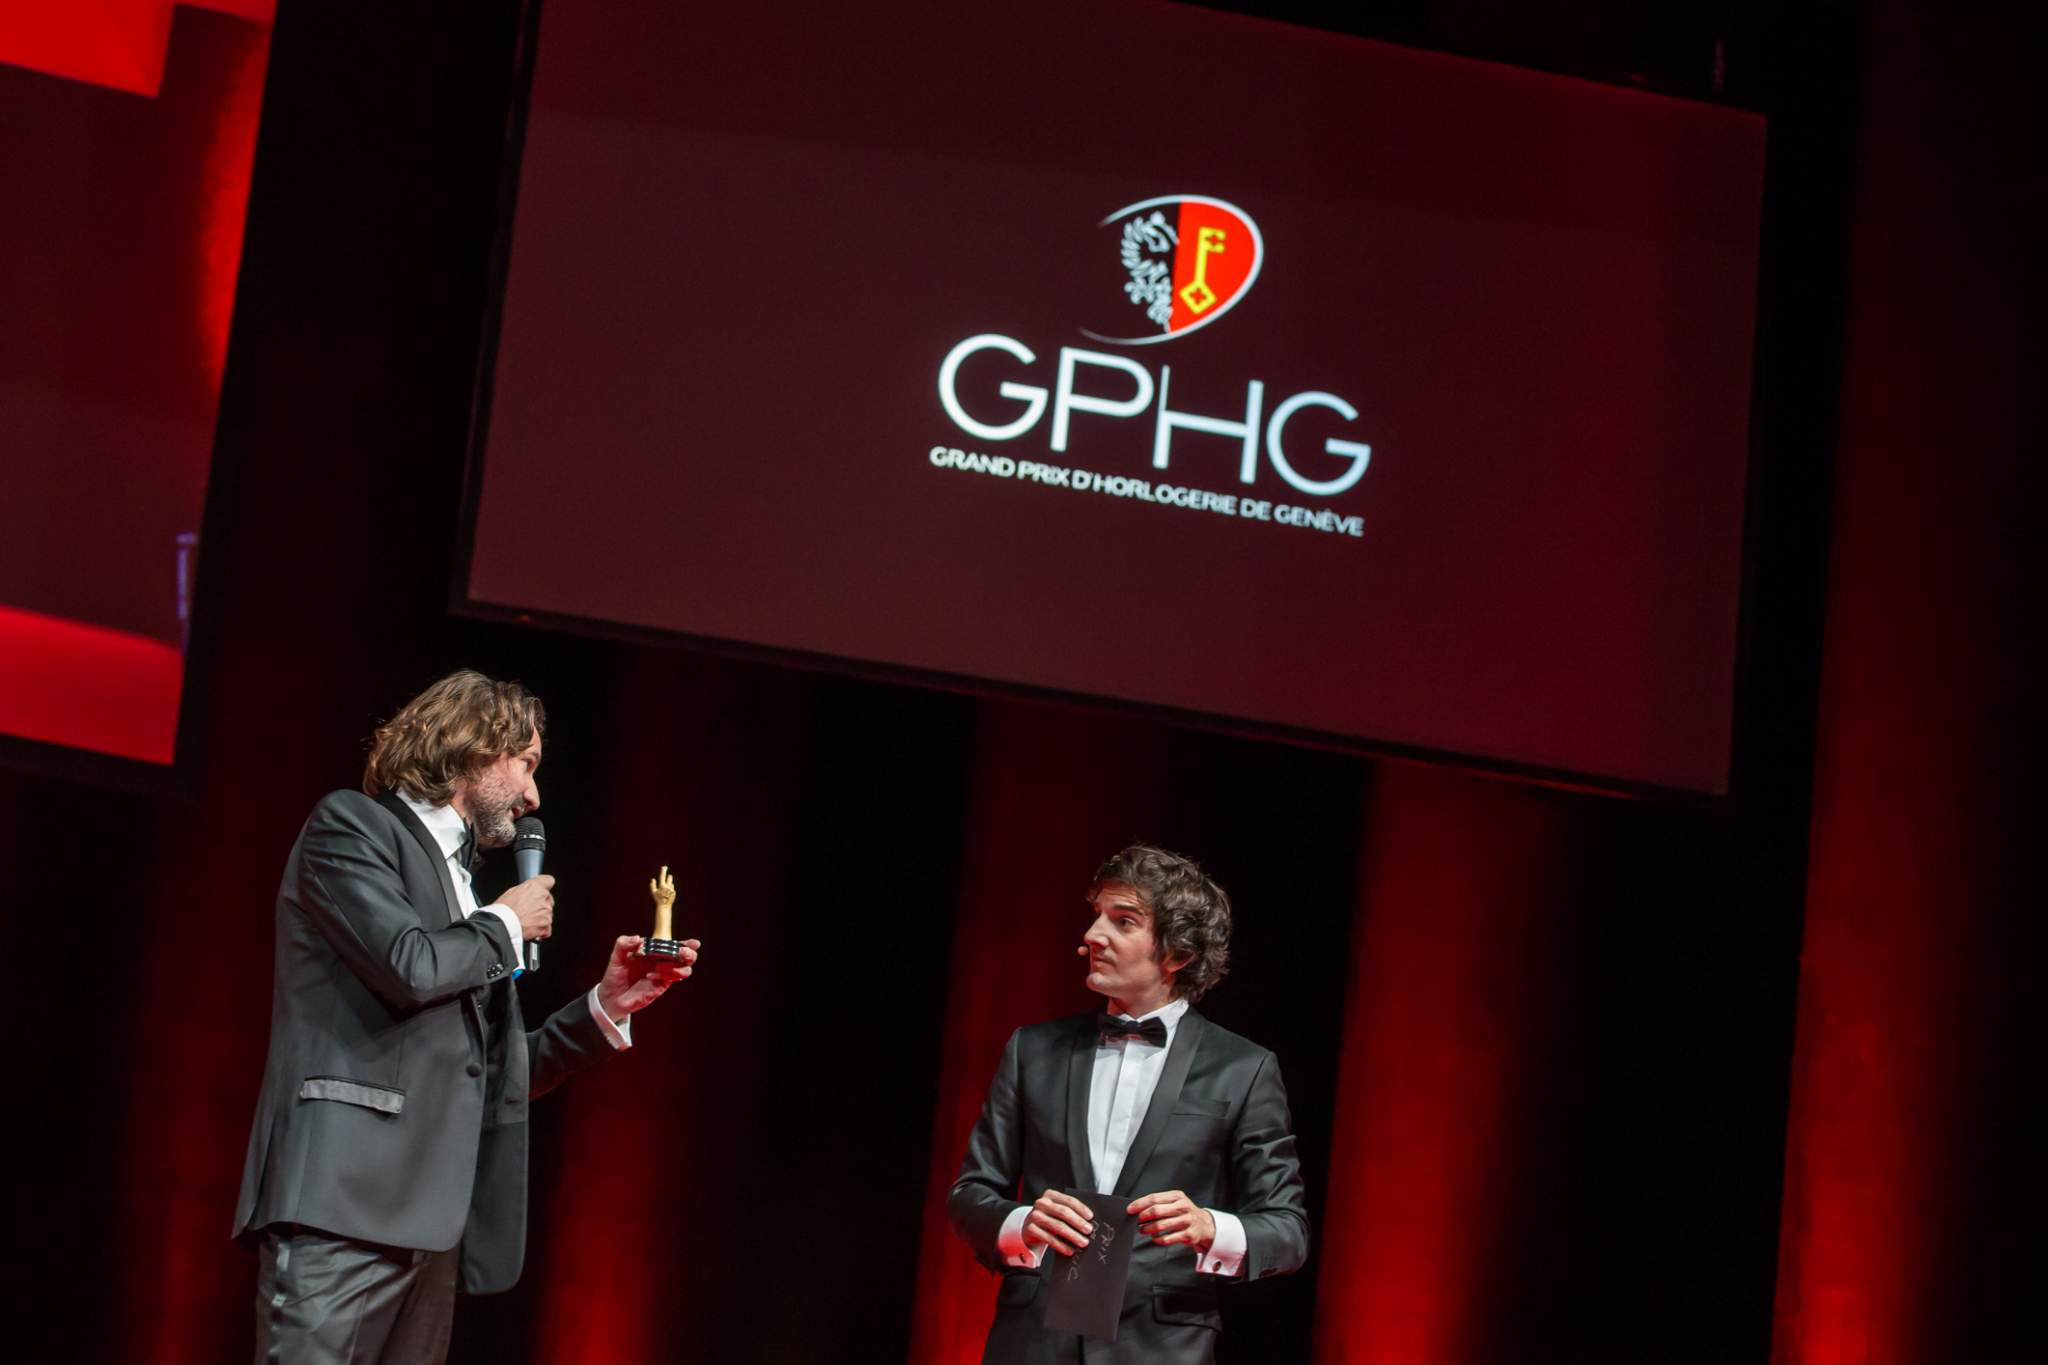 Frédéric Beigbeder and Gaspard Proust (MCs of the prize-giving ceremony of the GPHG 2015)